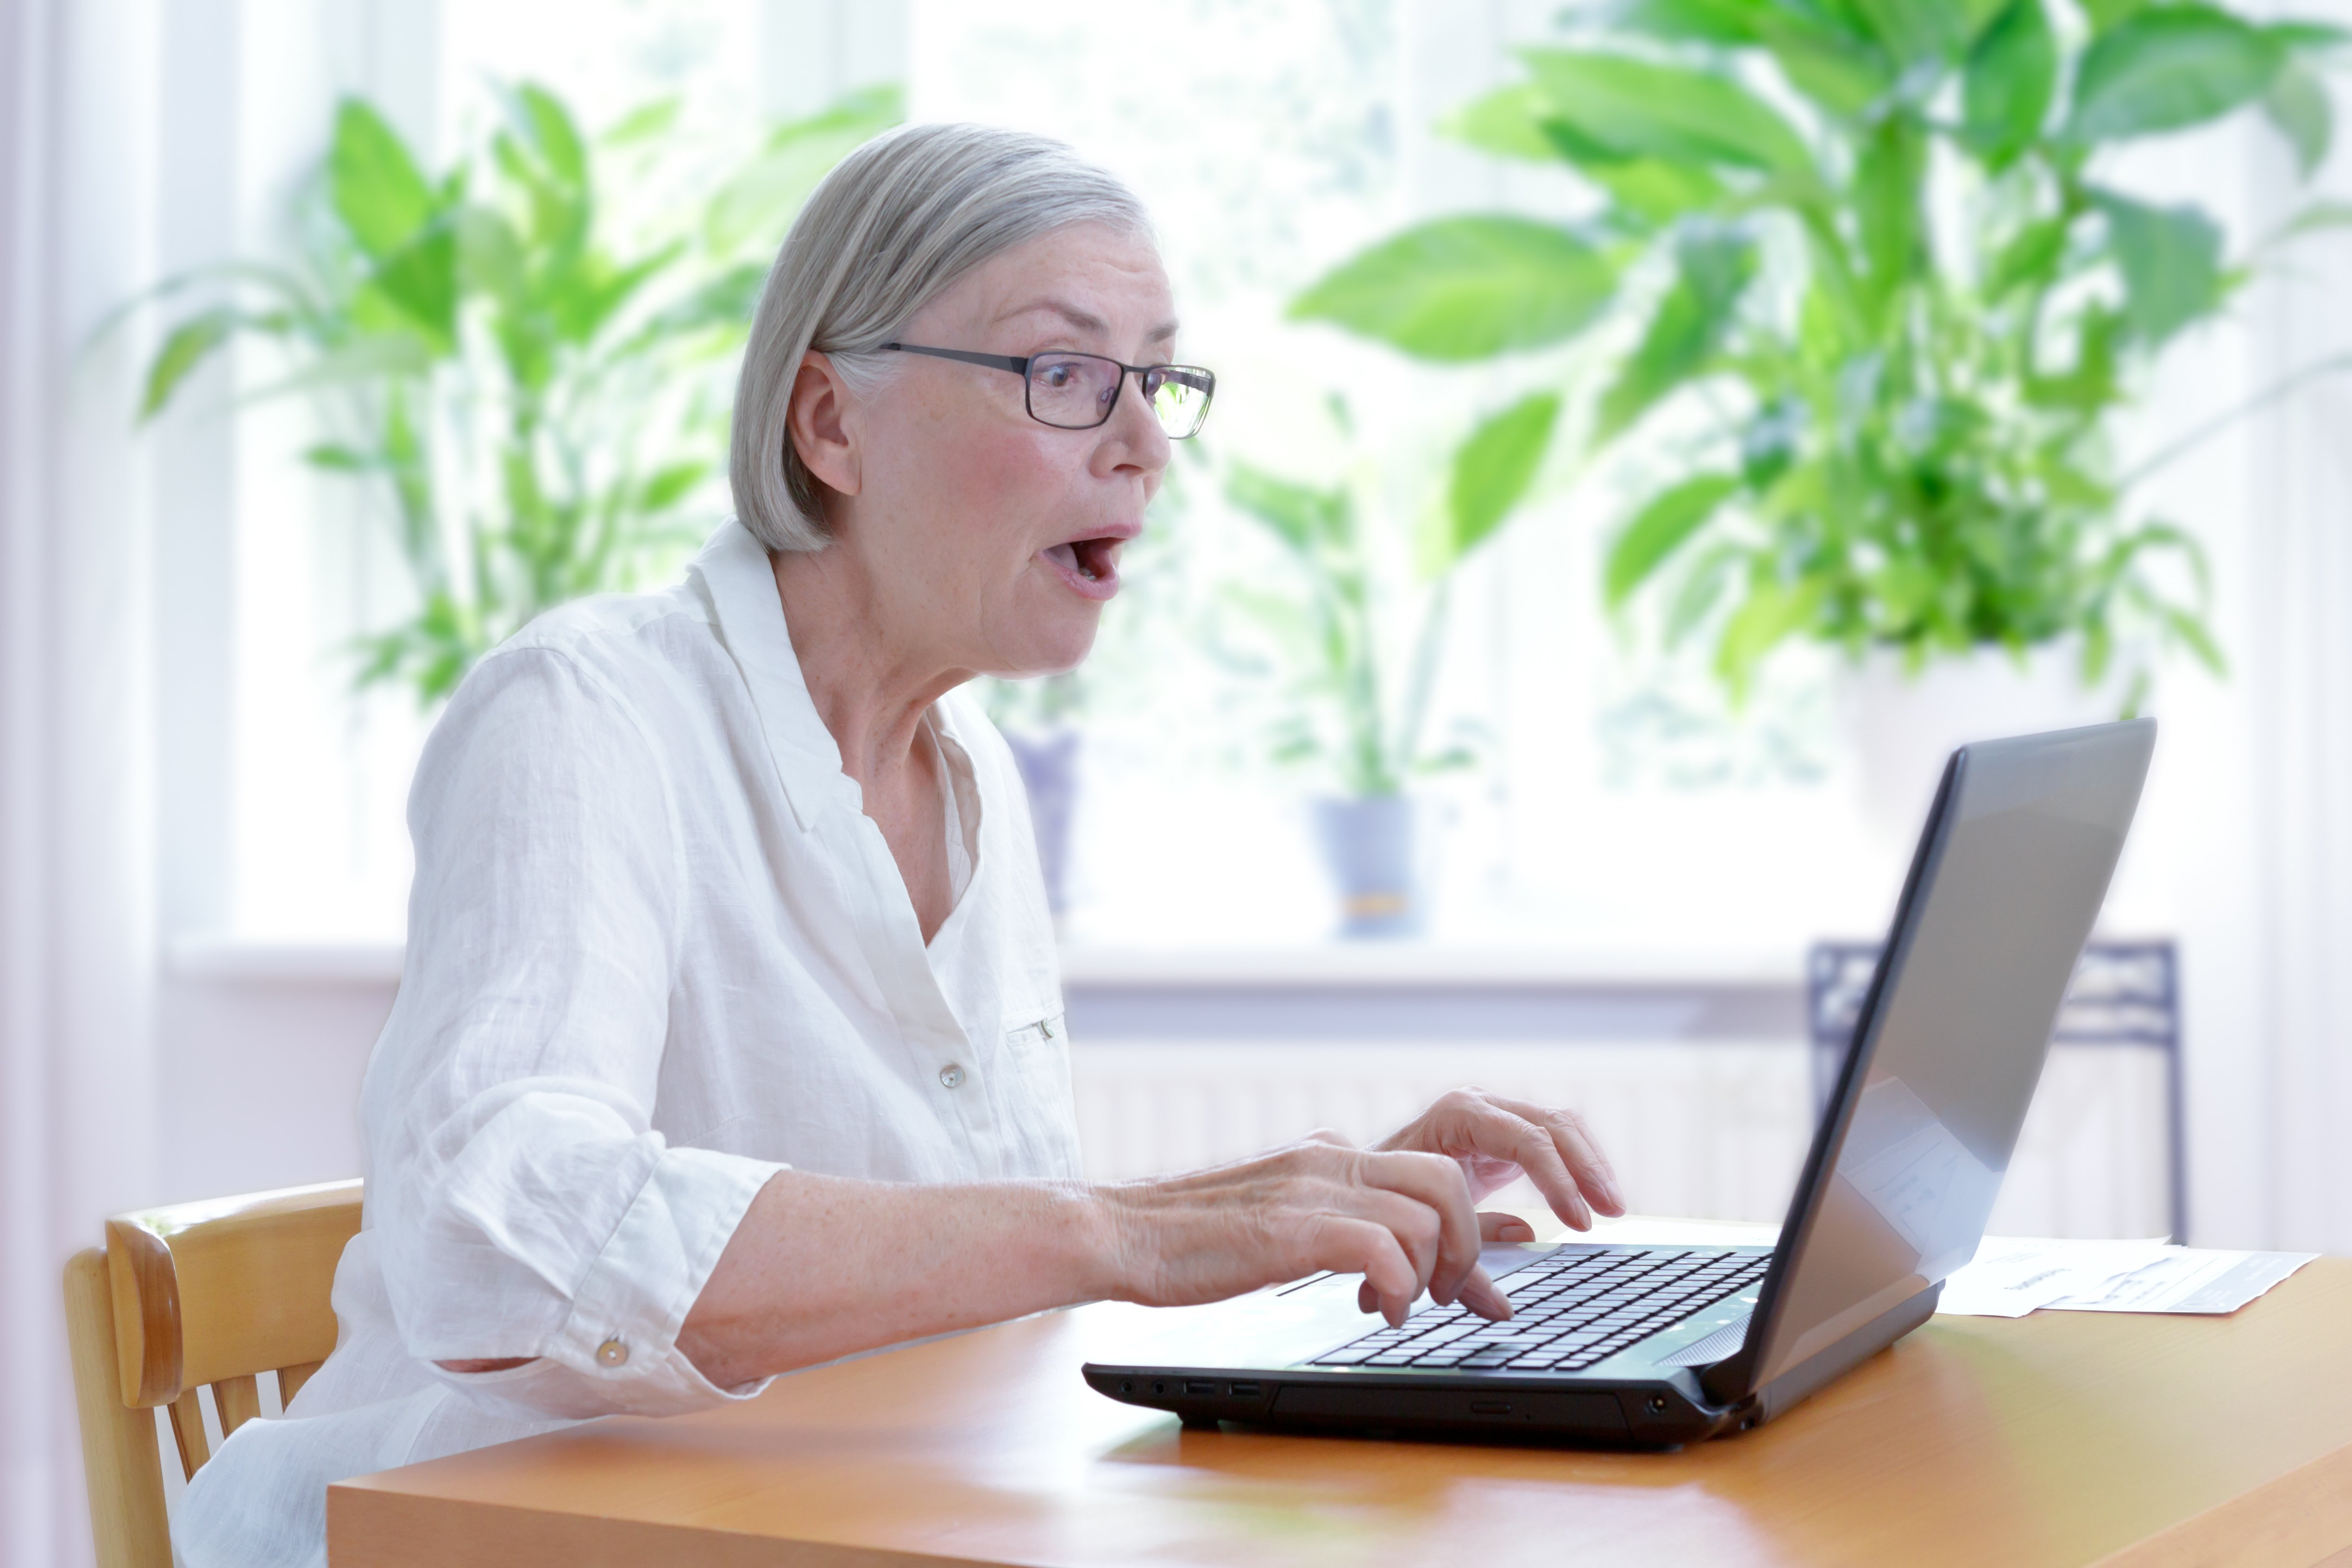 Elderly woman shocked while staring at laptop screen.   Source: Shutterstock